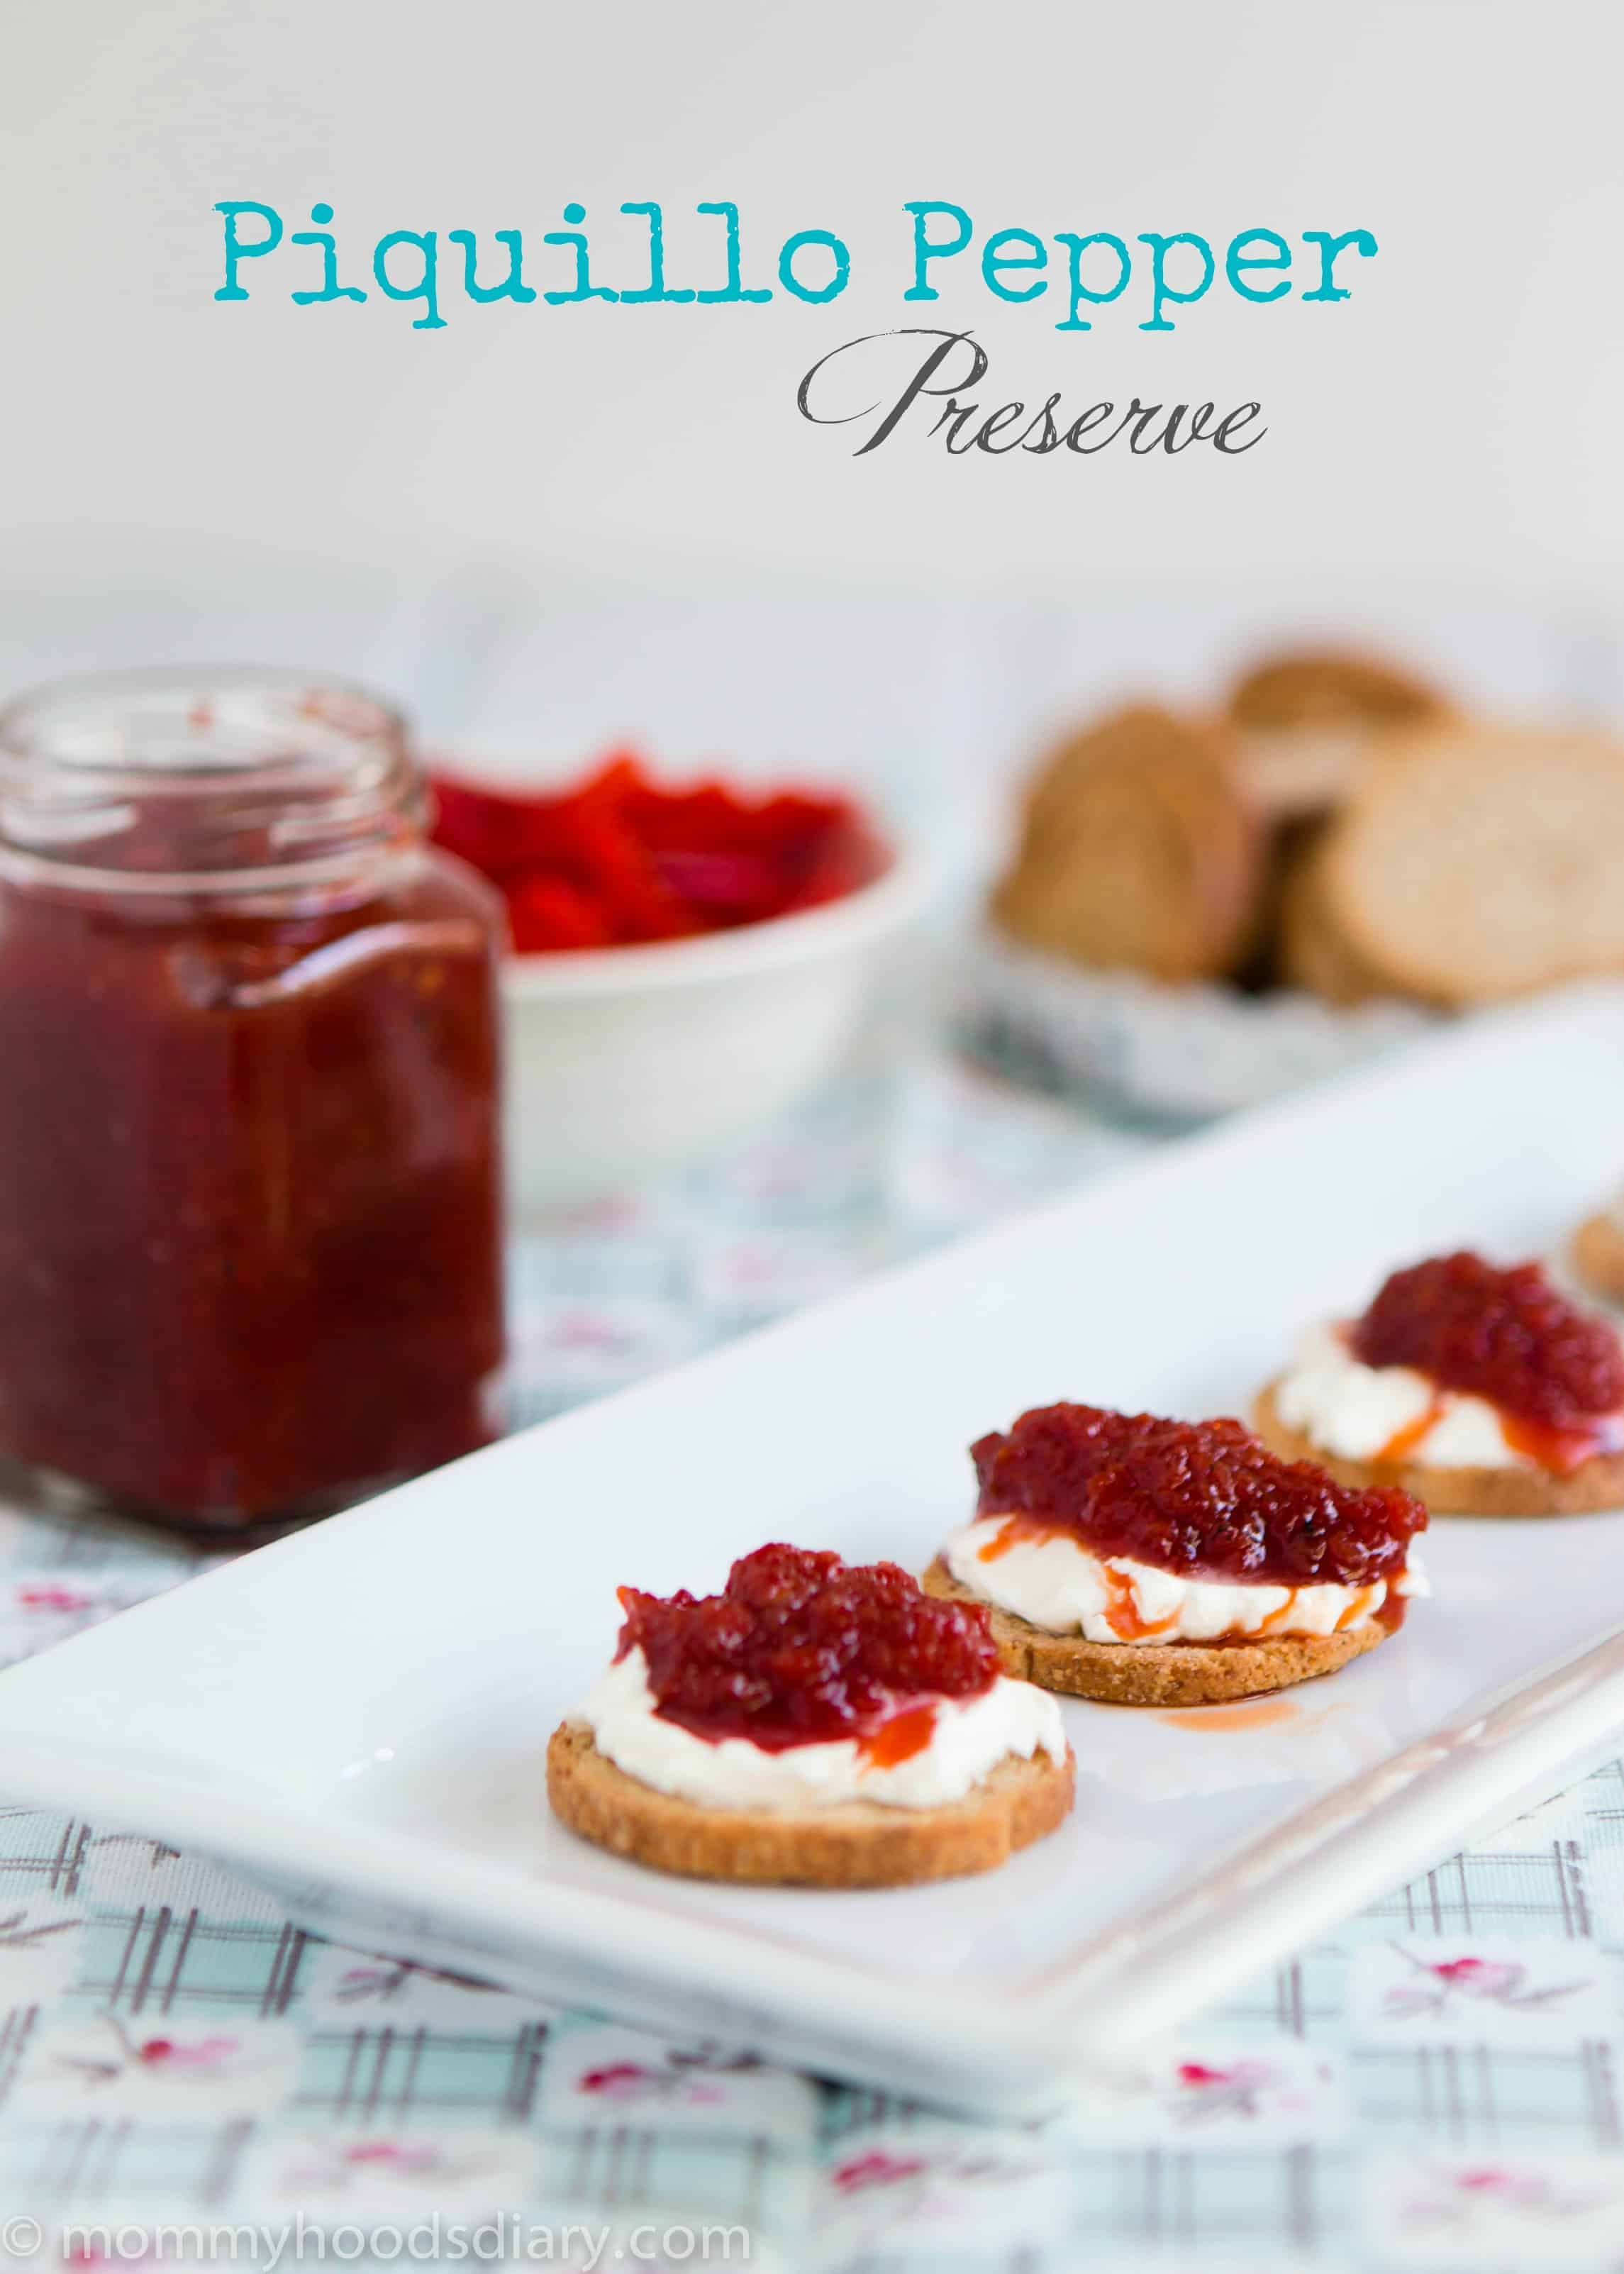 Piquillo Pepper Preserve